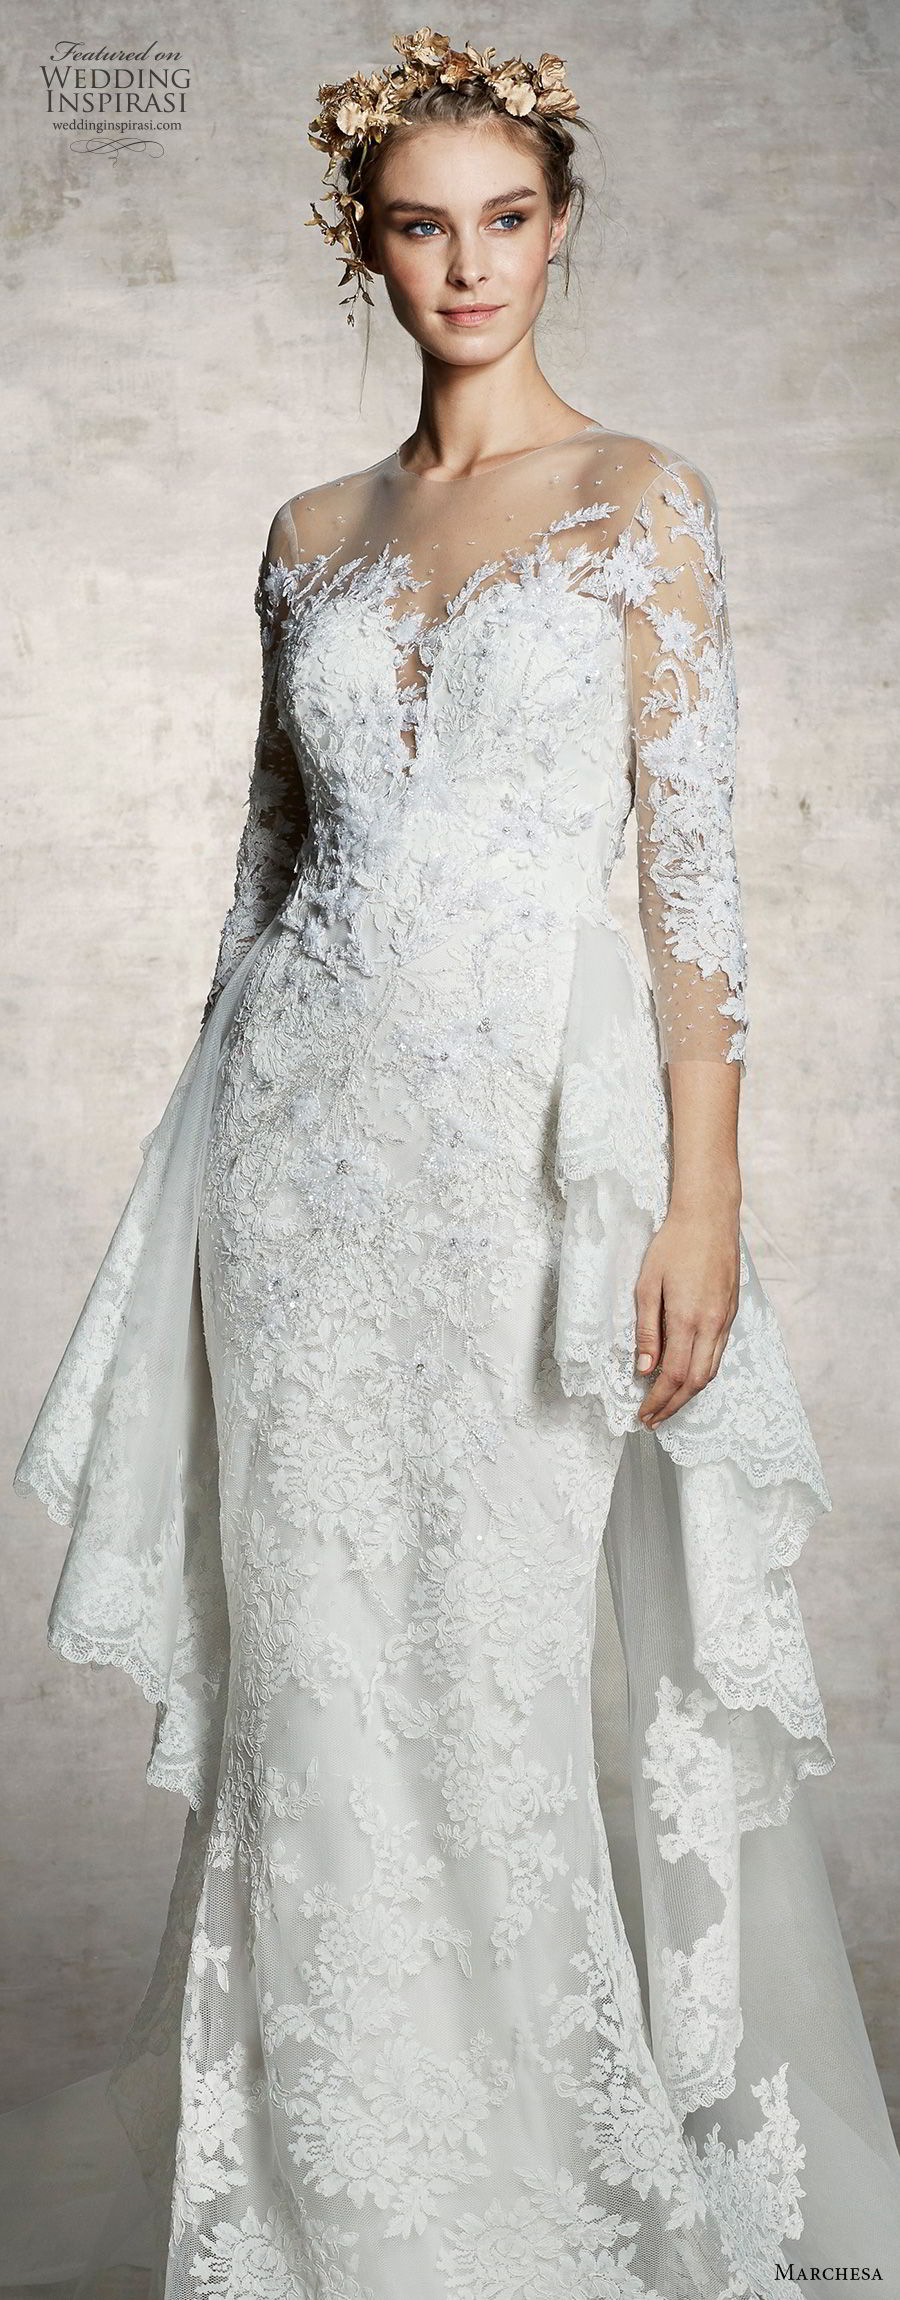 marchesa spring 2019 bridal three quarter sleeves illusion jewel sweetheart neckline full embellishment elegant sheath fit and flare wedding dress (8) lv